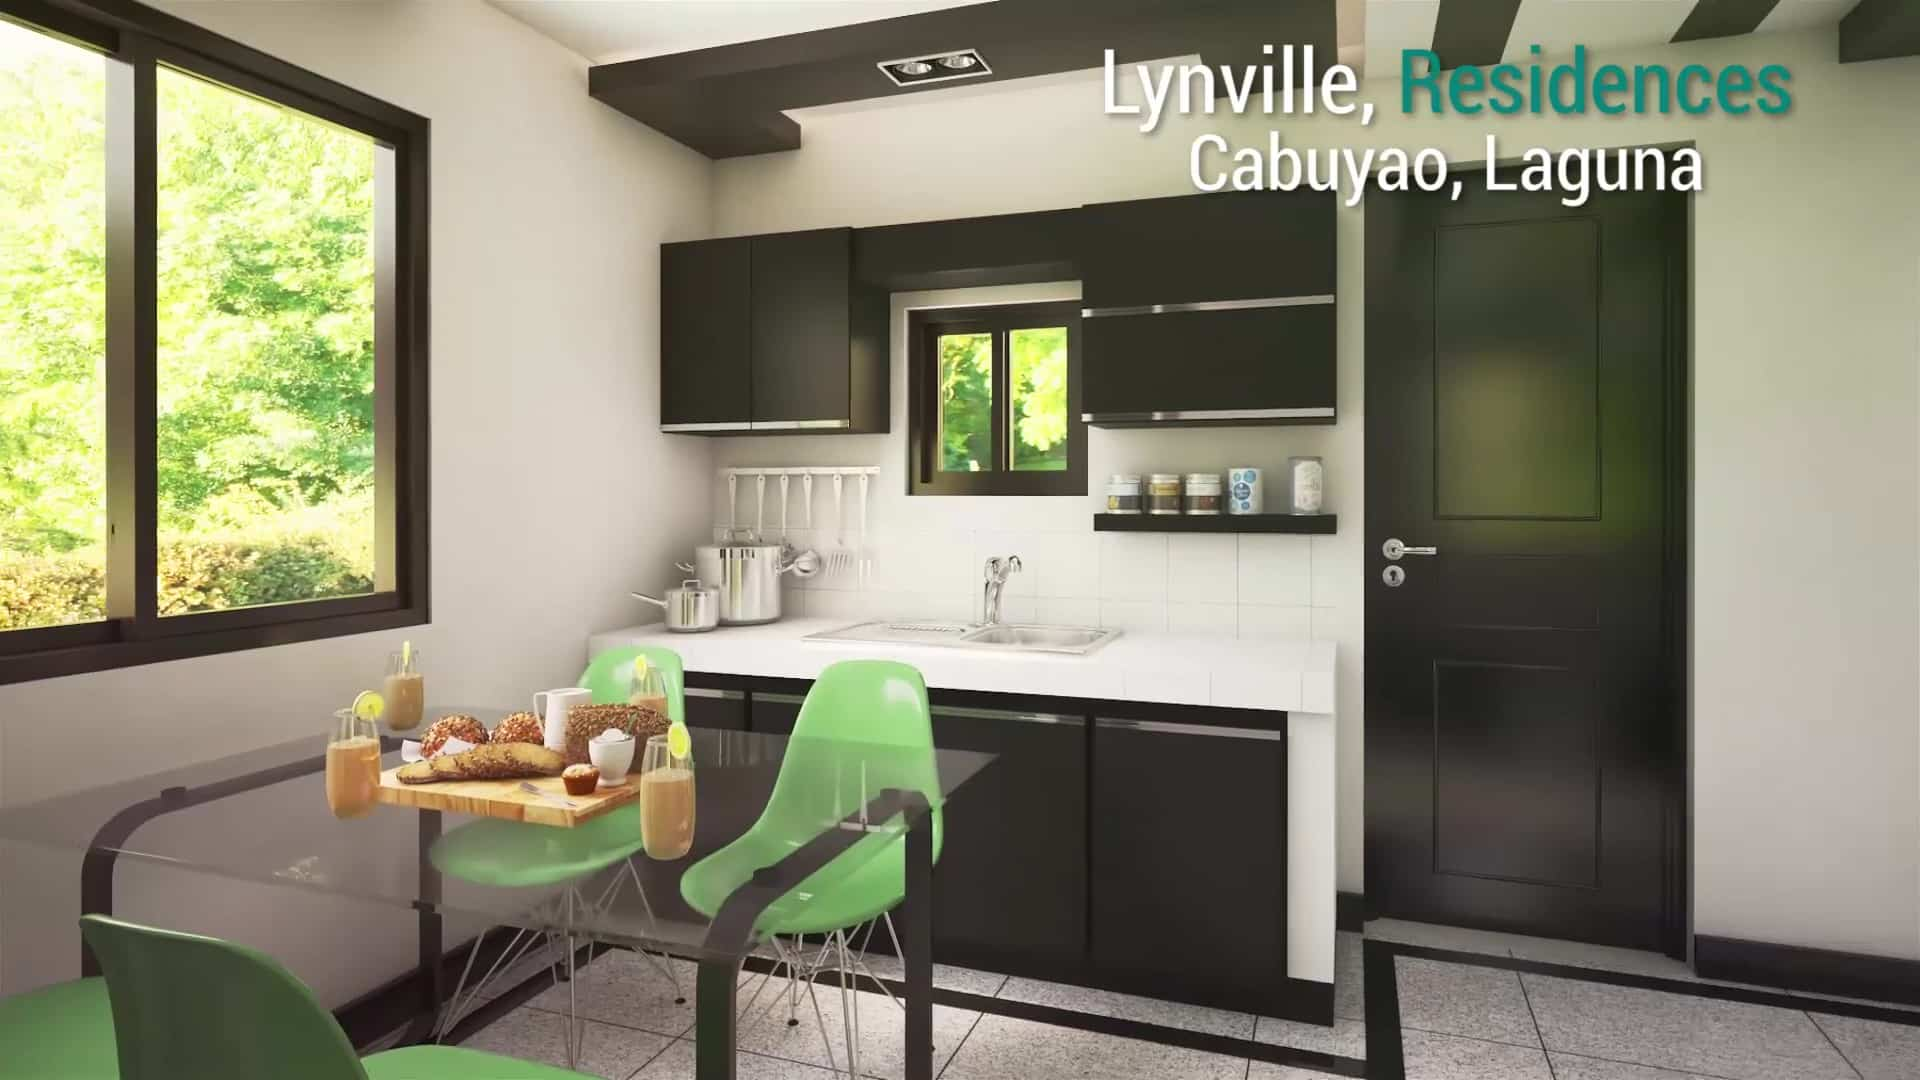 Lynville Residences Cabuyao Laguna Pagibig Affordable Homes